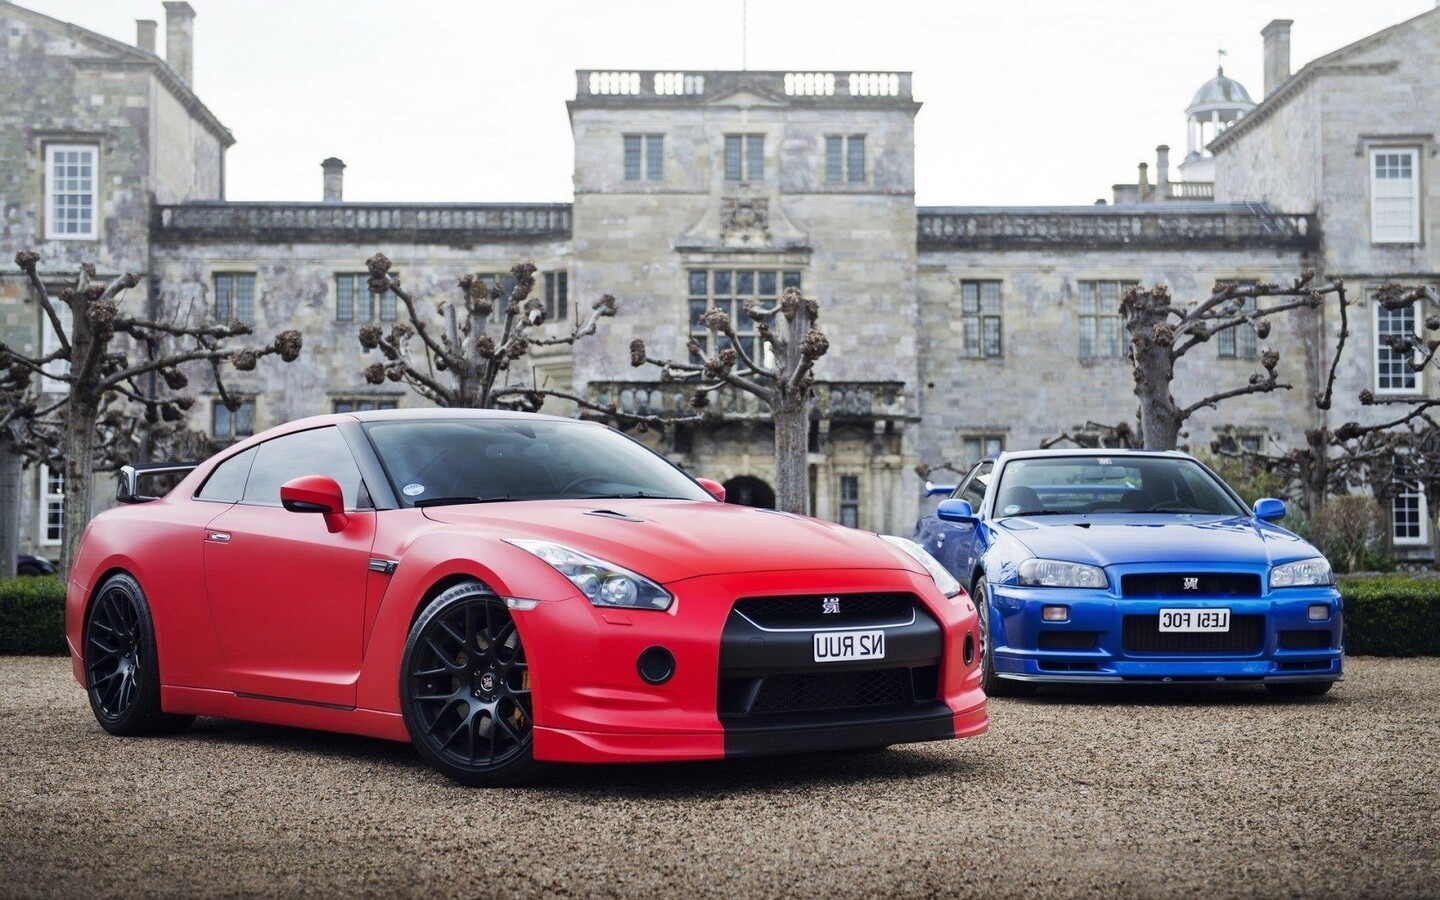 1440x900 Nissan Gtr 3 1440x900 Resolution Hd 4k Wallpapers Images